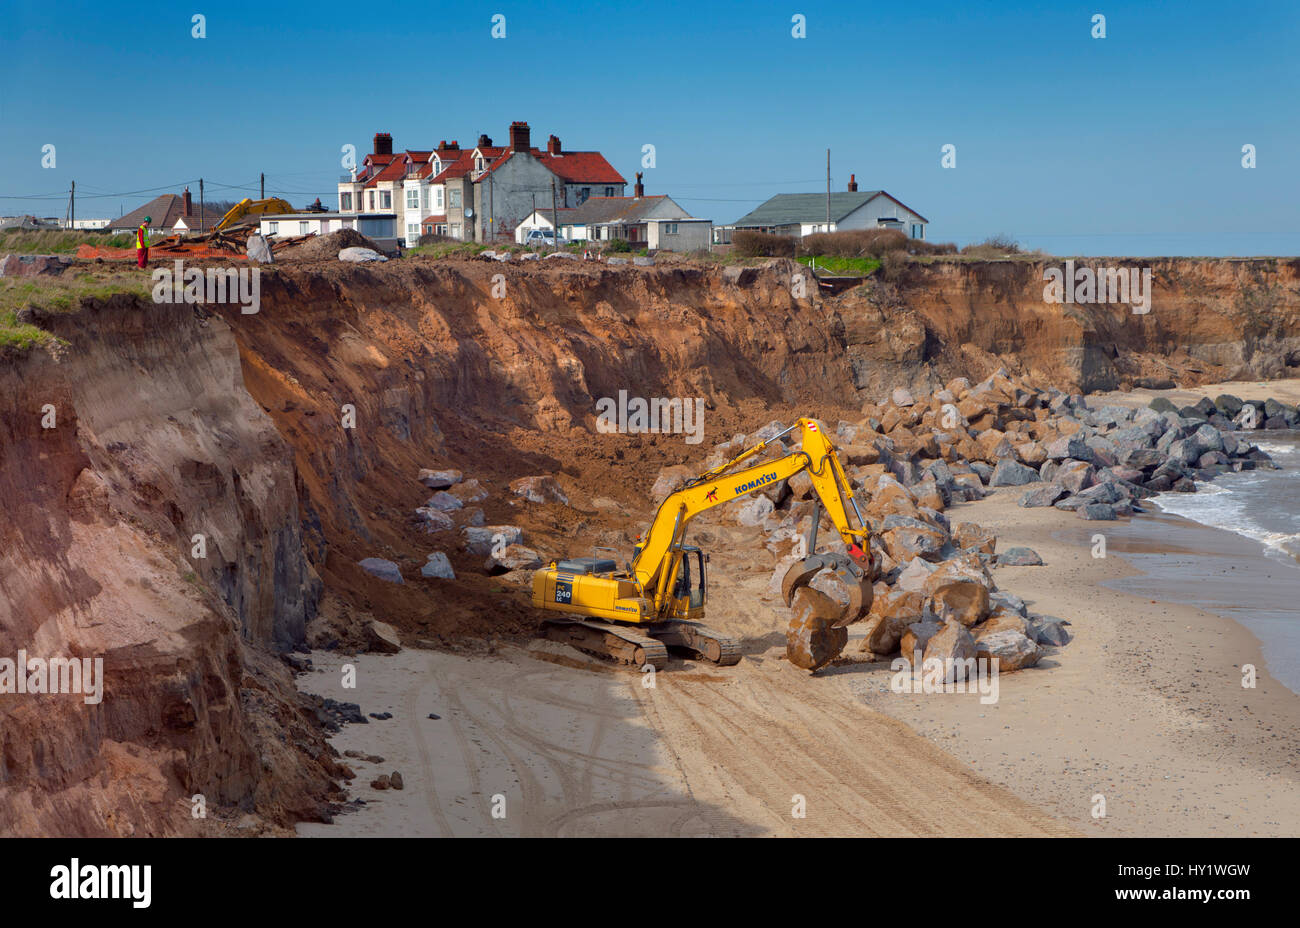 uk excavator stockfotos uk excavator bilder alamy. Black Bedroom Furniture Sets. Home Design Ideas